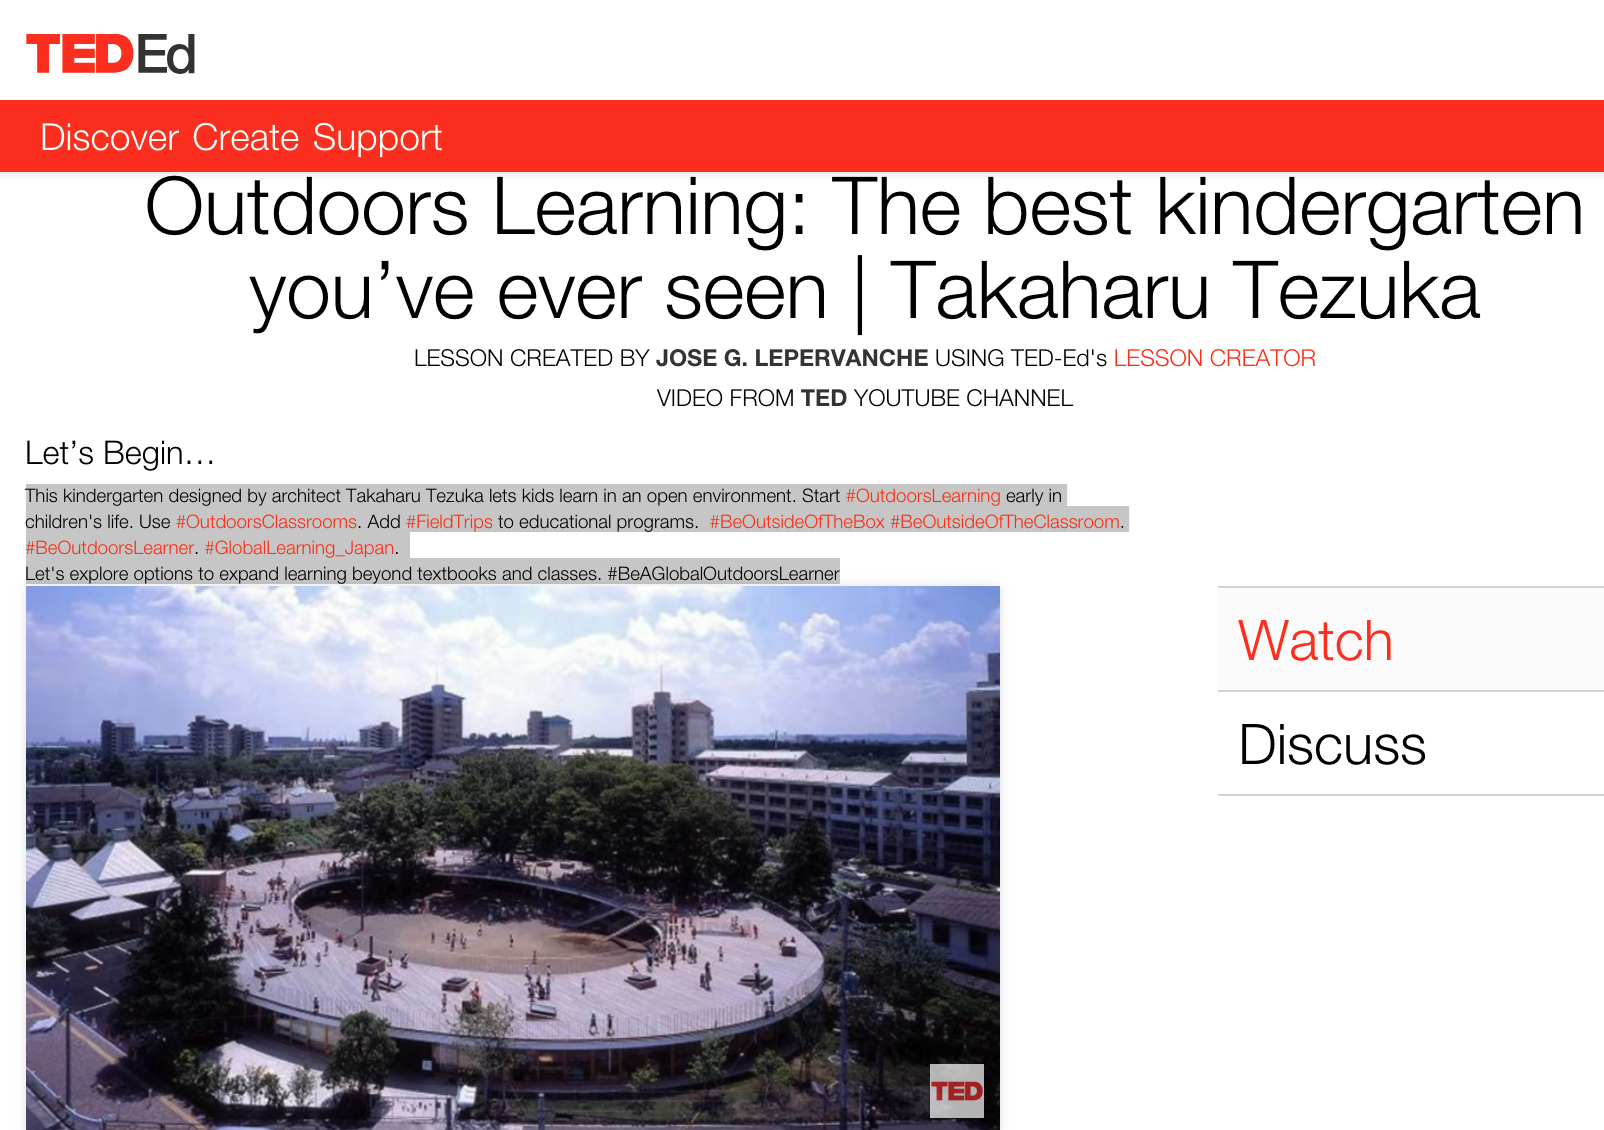 Outdoors Learning: The Best Kindergarten You've Ever Seen | Takaharu Tezuka | TED Ed Lesson created by Dr. Jose G. Lepervanche